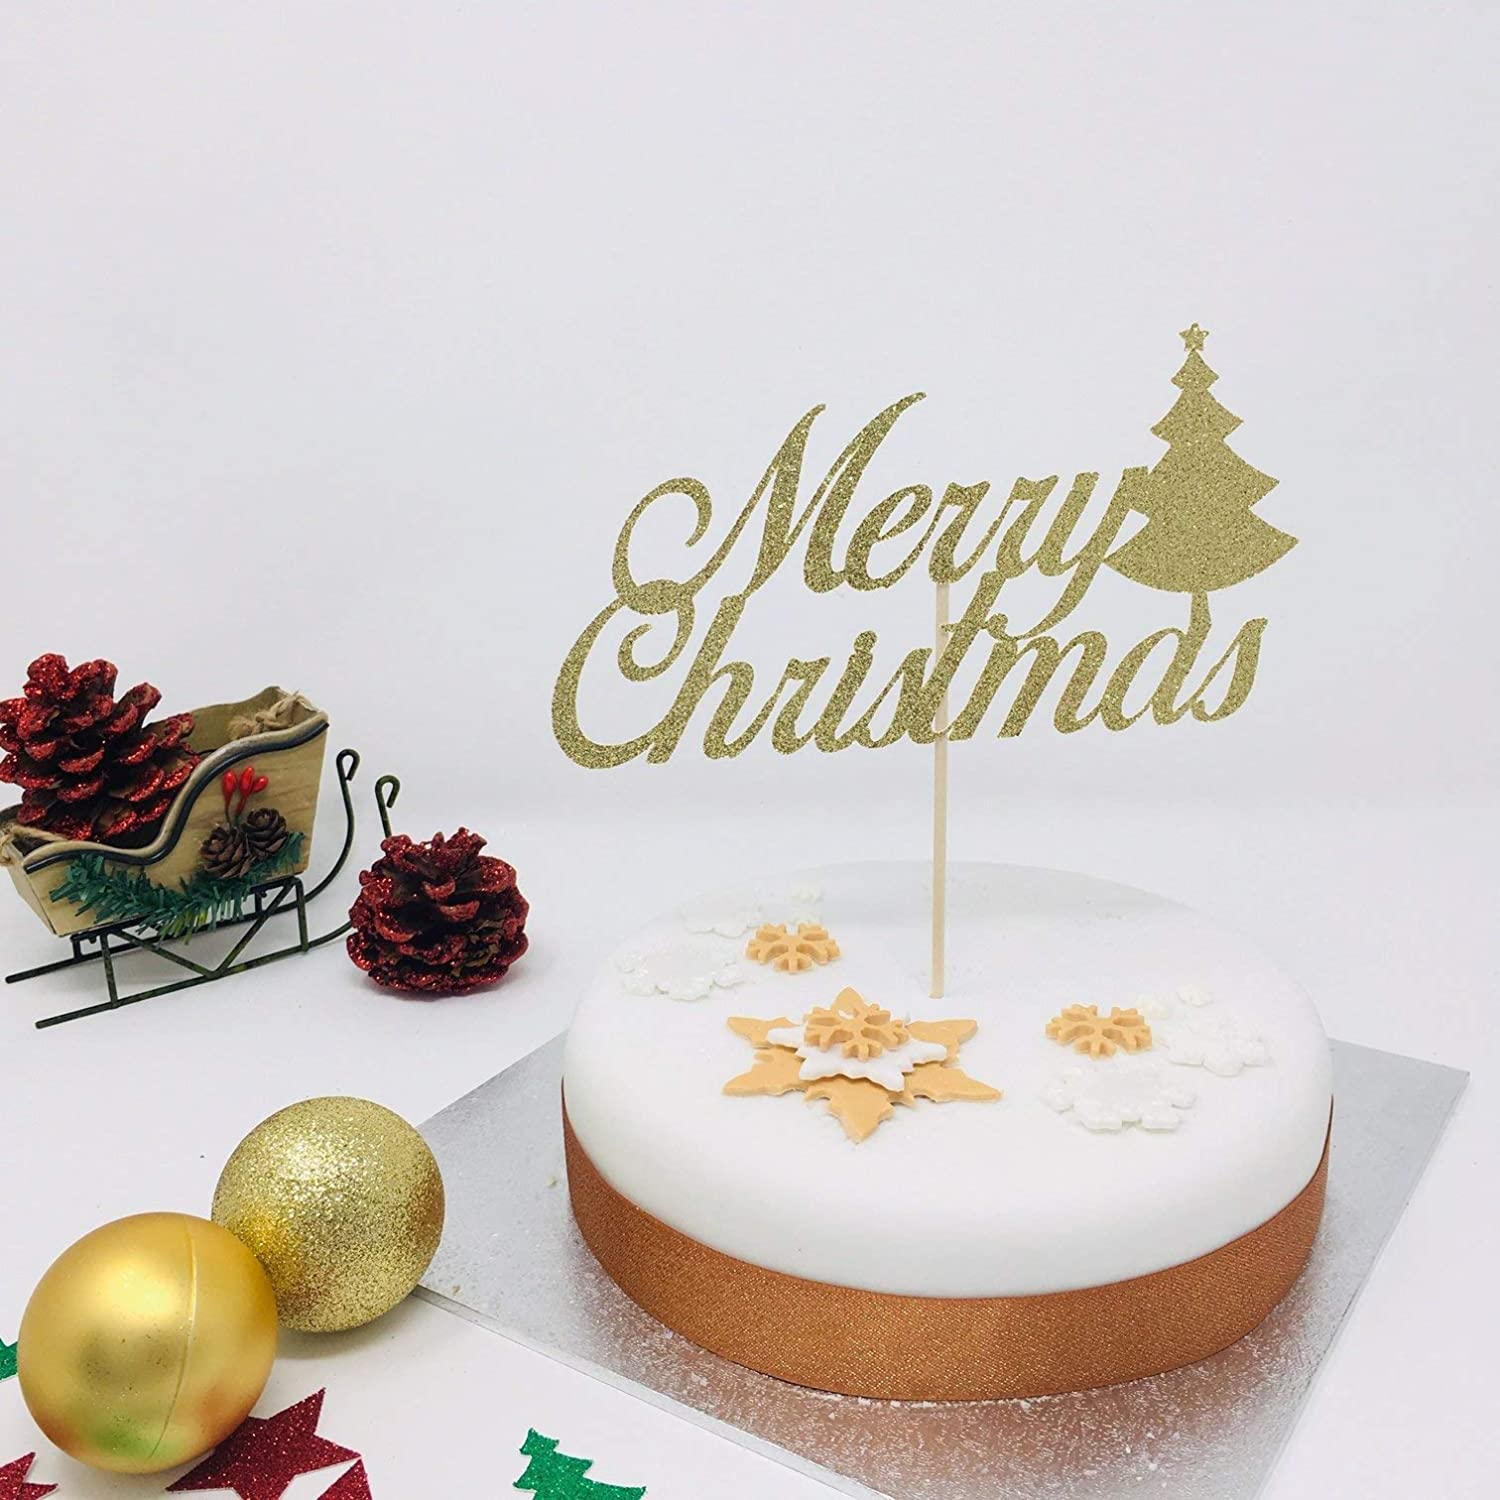 Merry Christmas cake topper with Christmas tree. Christmas cake decoration with glitter topper. Christmas table decorations.